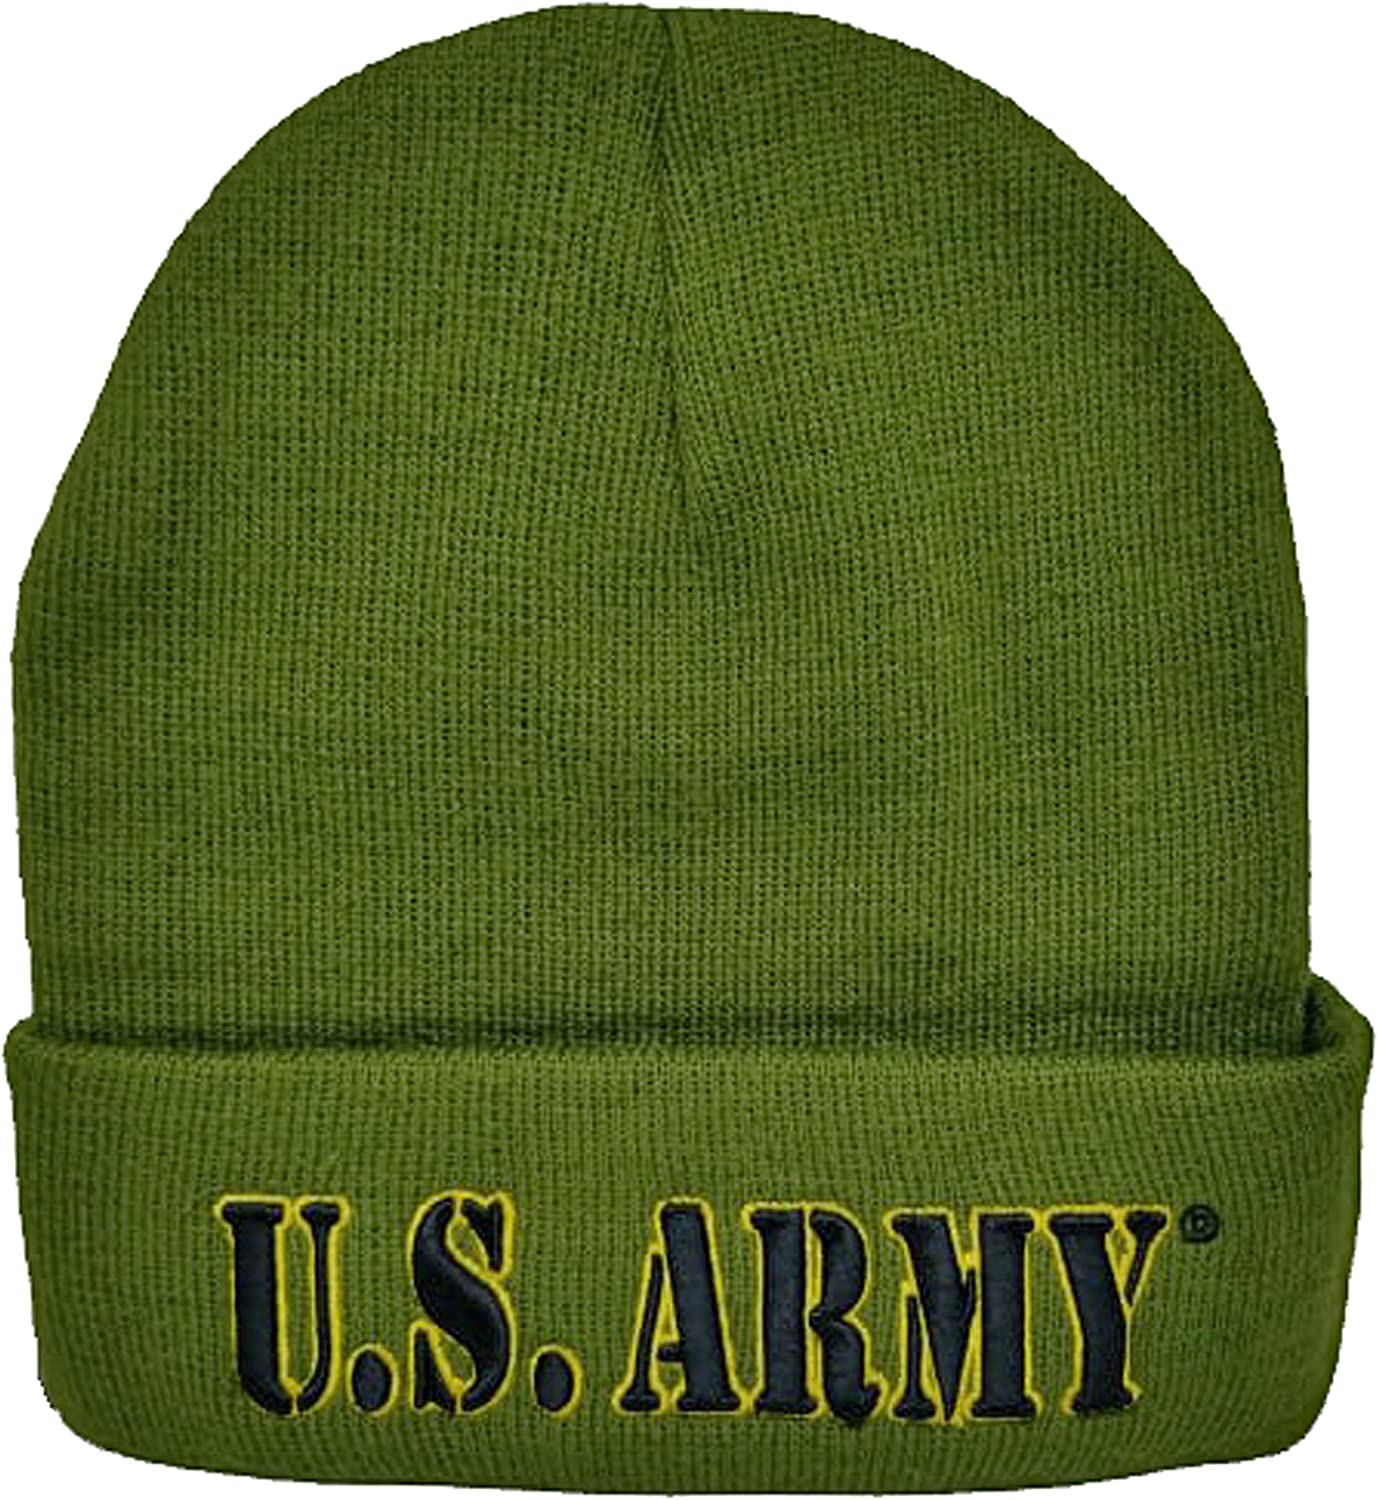 Buy Caps Beauty products and Hats U.S. Army Veteran Black Winter Embroidered Bea Reservation